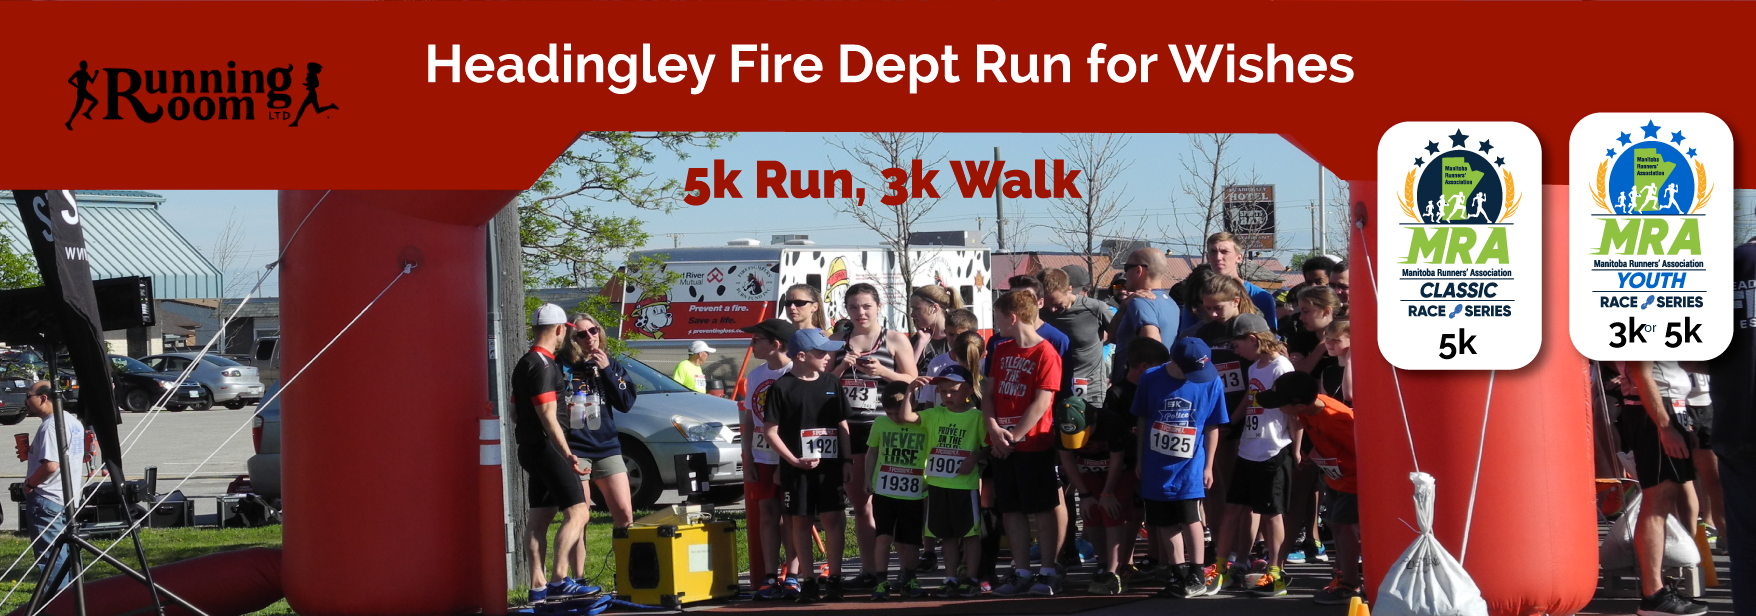 Headingley Fire Dept Run for Wishes